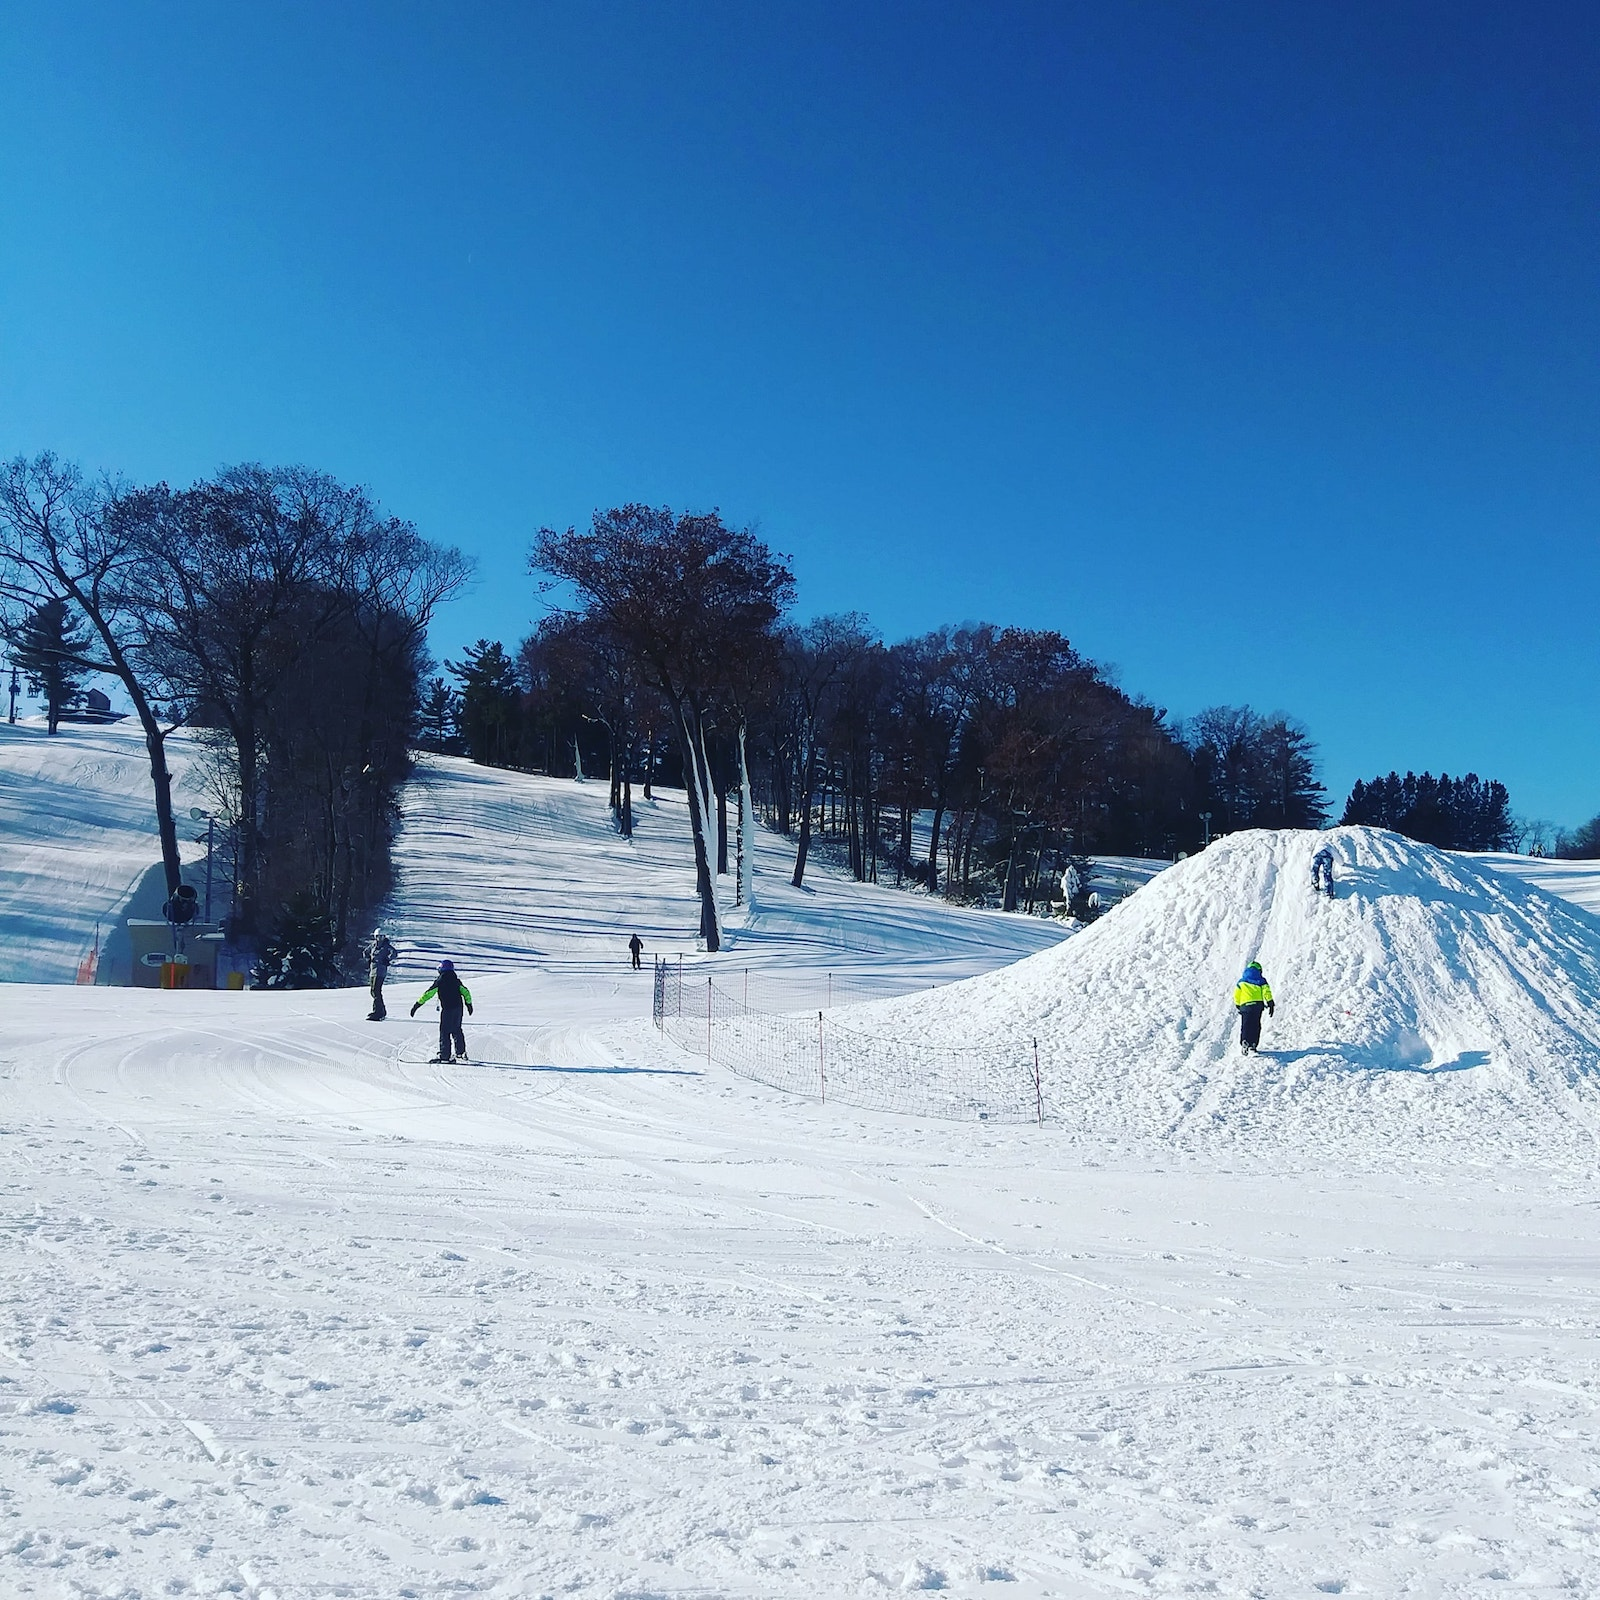 Image of skiers and snowboarders at Ausblick Ski Resort in Wisconsin